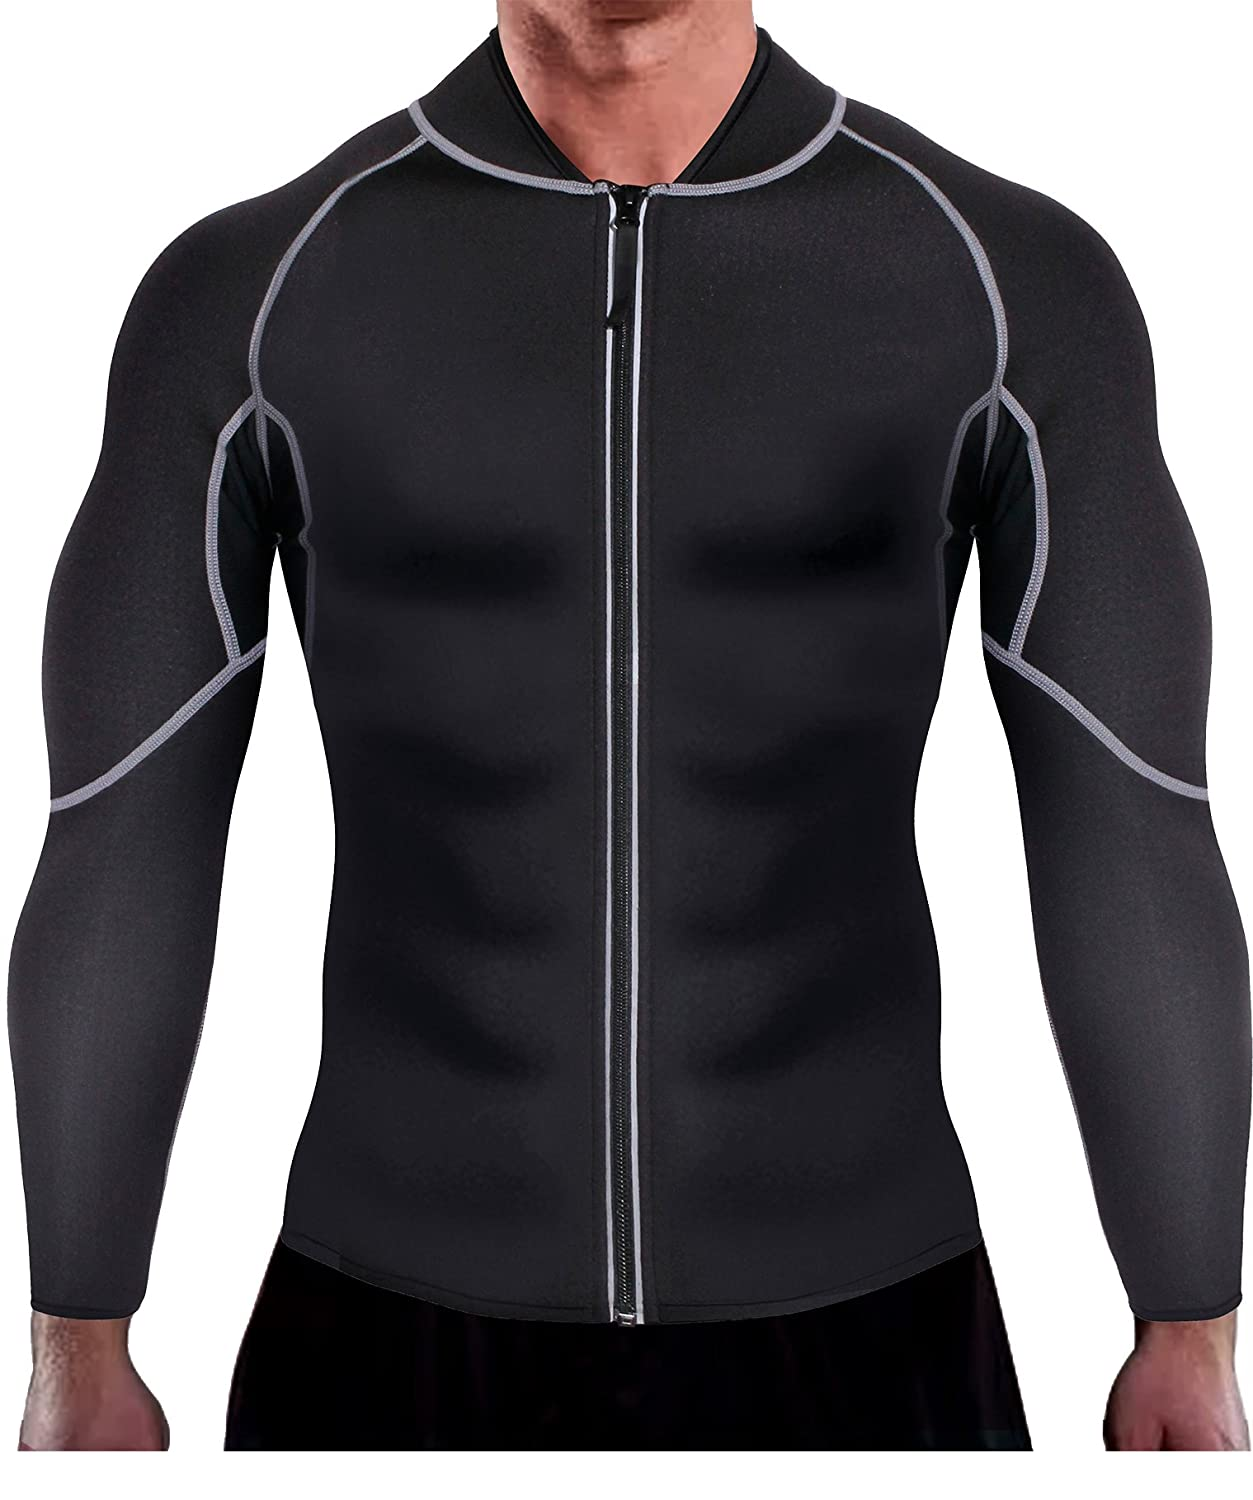 eb9801fe01 Top 10 wholesale Weight Training With A Cold - Chinabrands.com